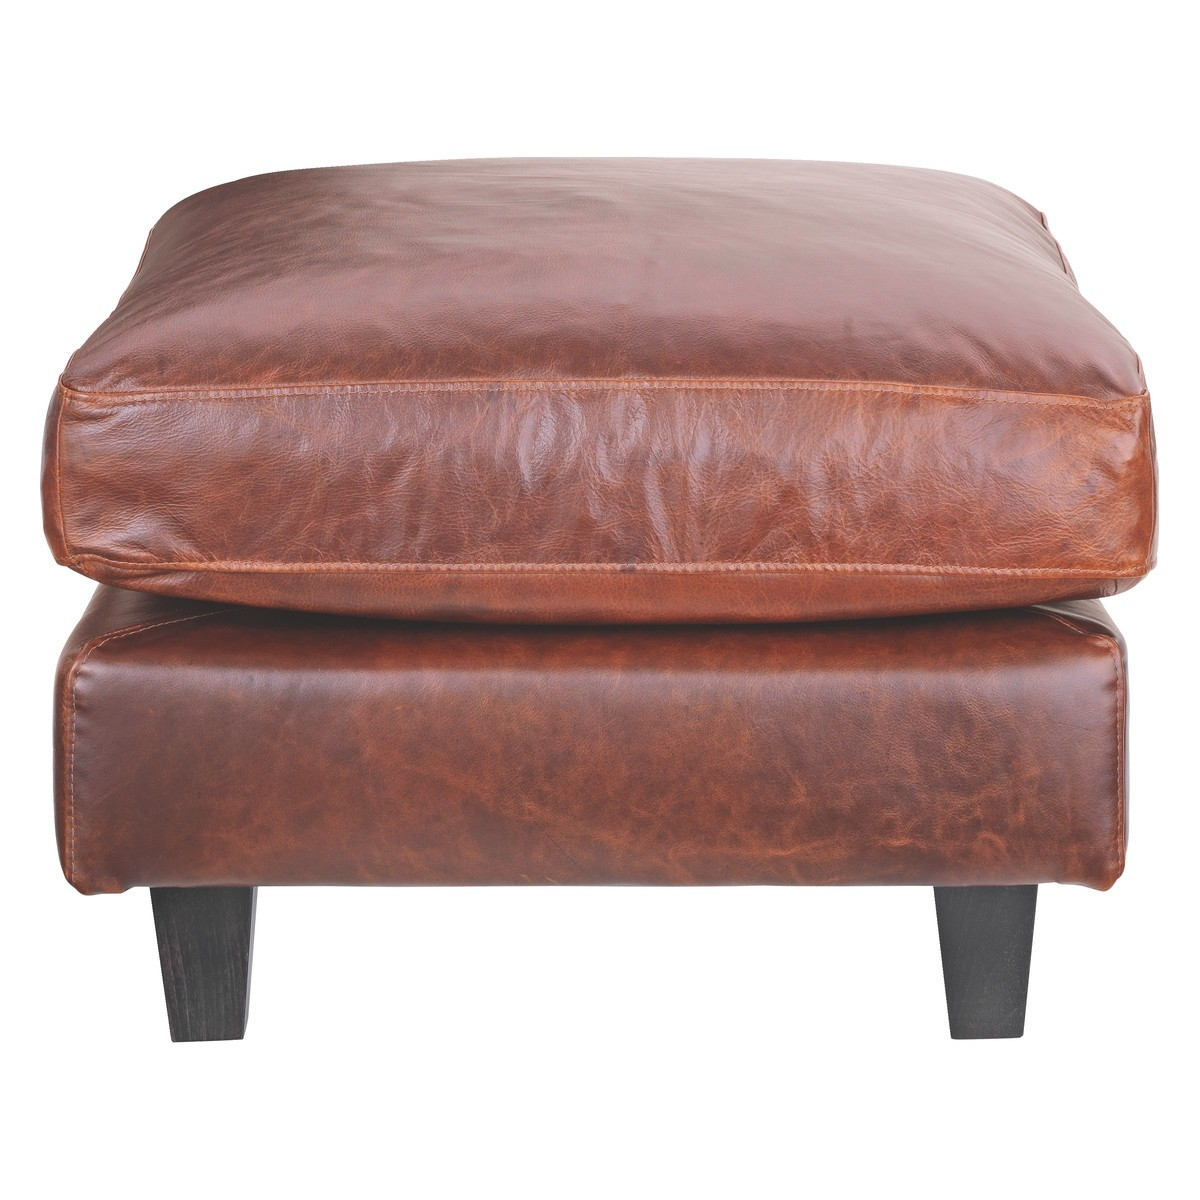 Featured Image of Leather Footstools